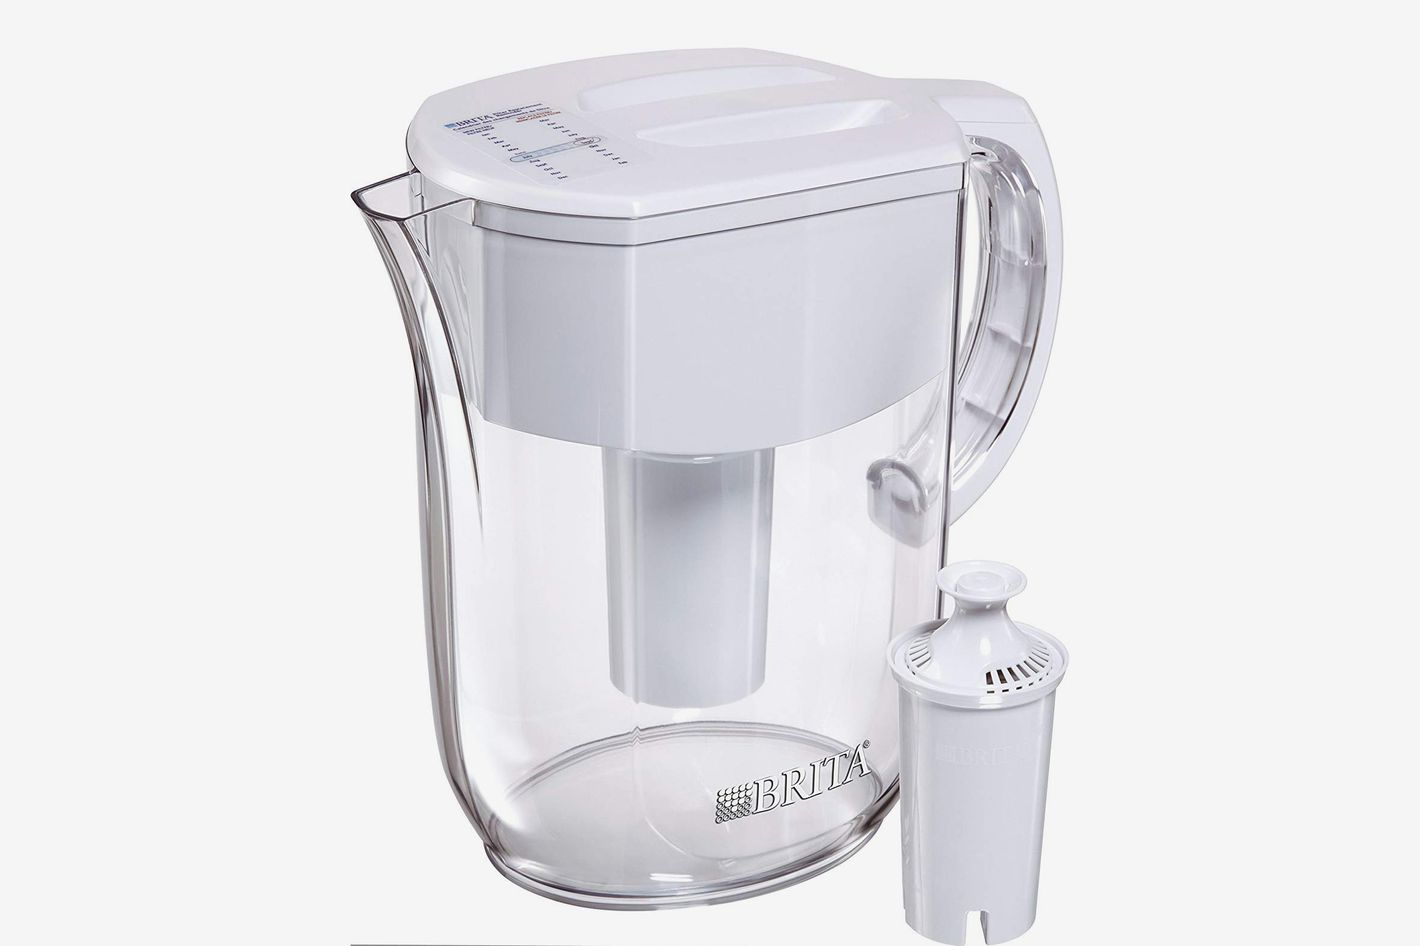 Best Water Filter Pitcher Guide, According to Science